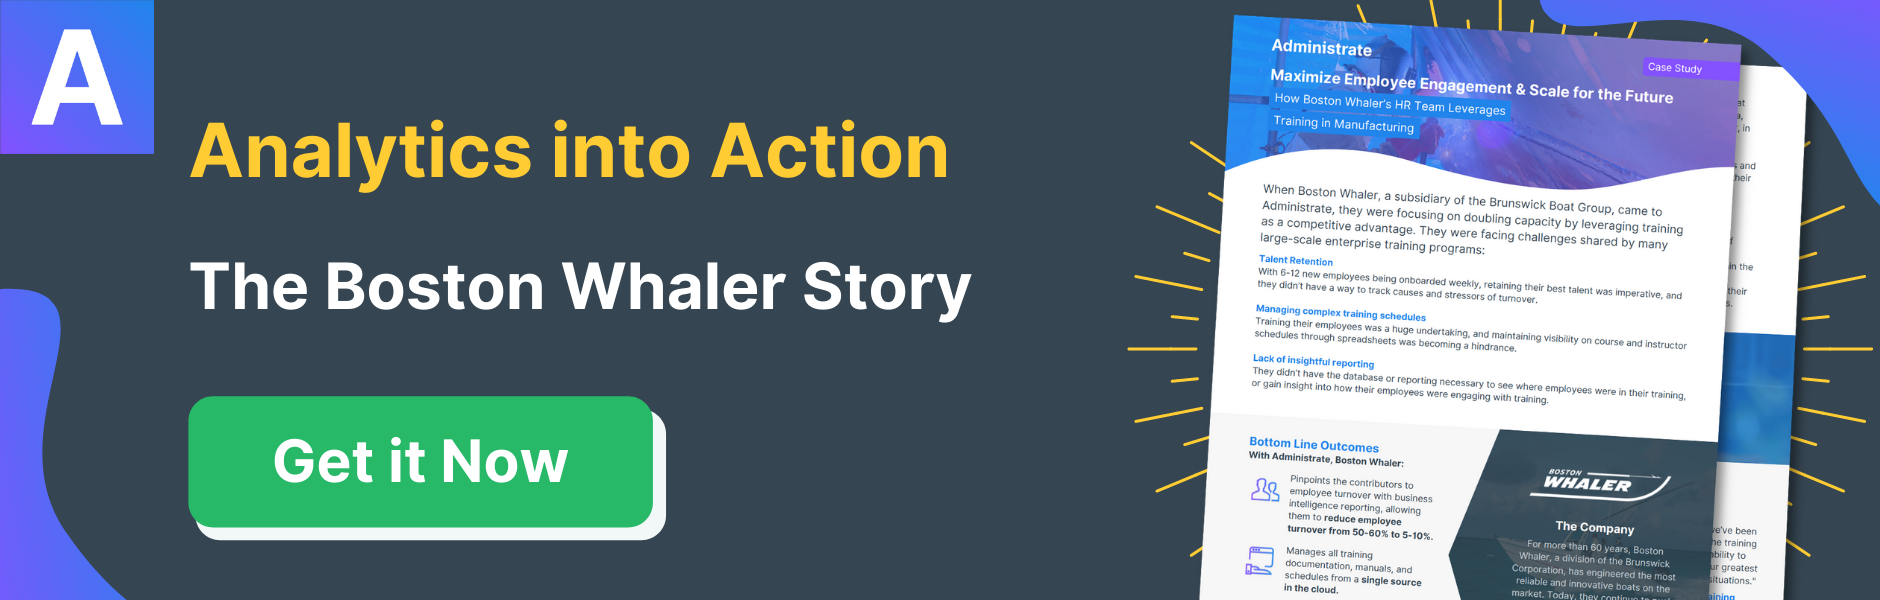 The Boston Whaler Story - How Administrate helped find and reverse causes for employee turnover